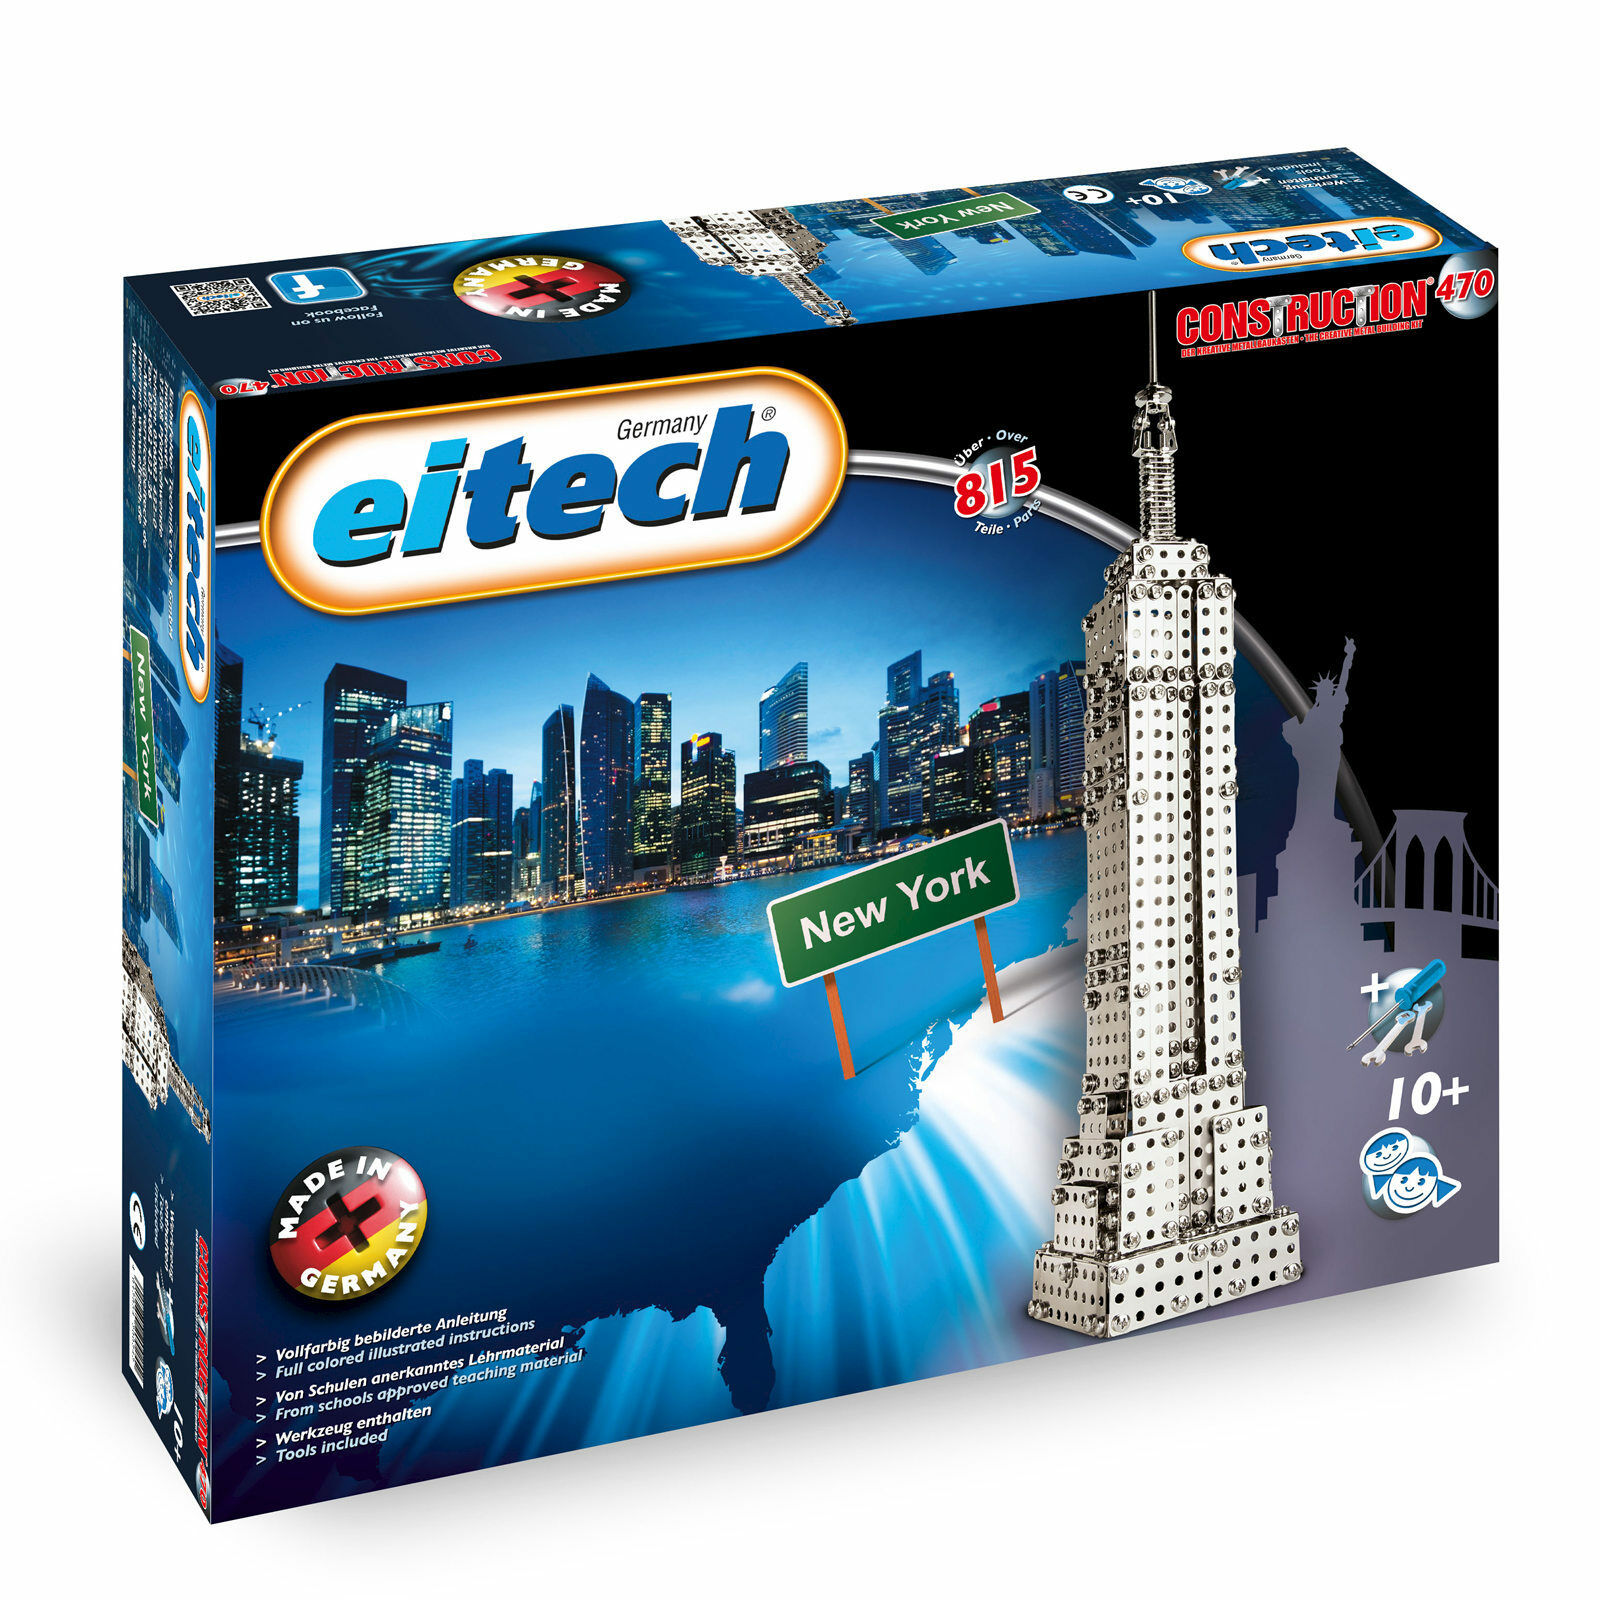 Eitech Metal Construction Sets Empire State Building 19 11 16in High